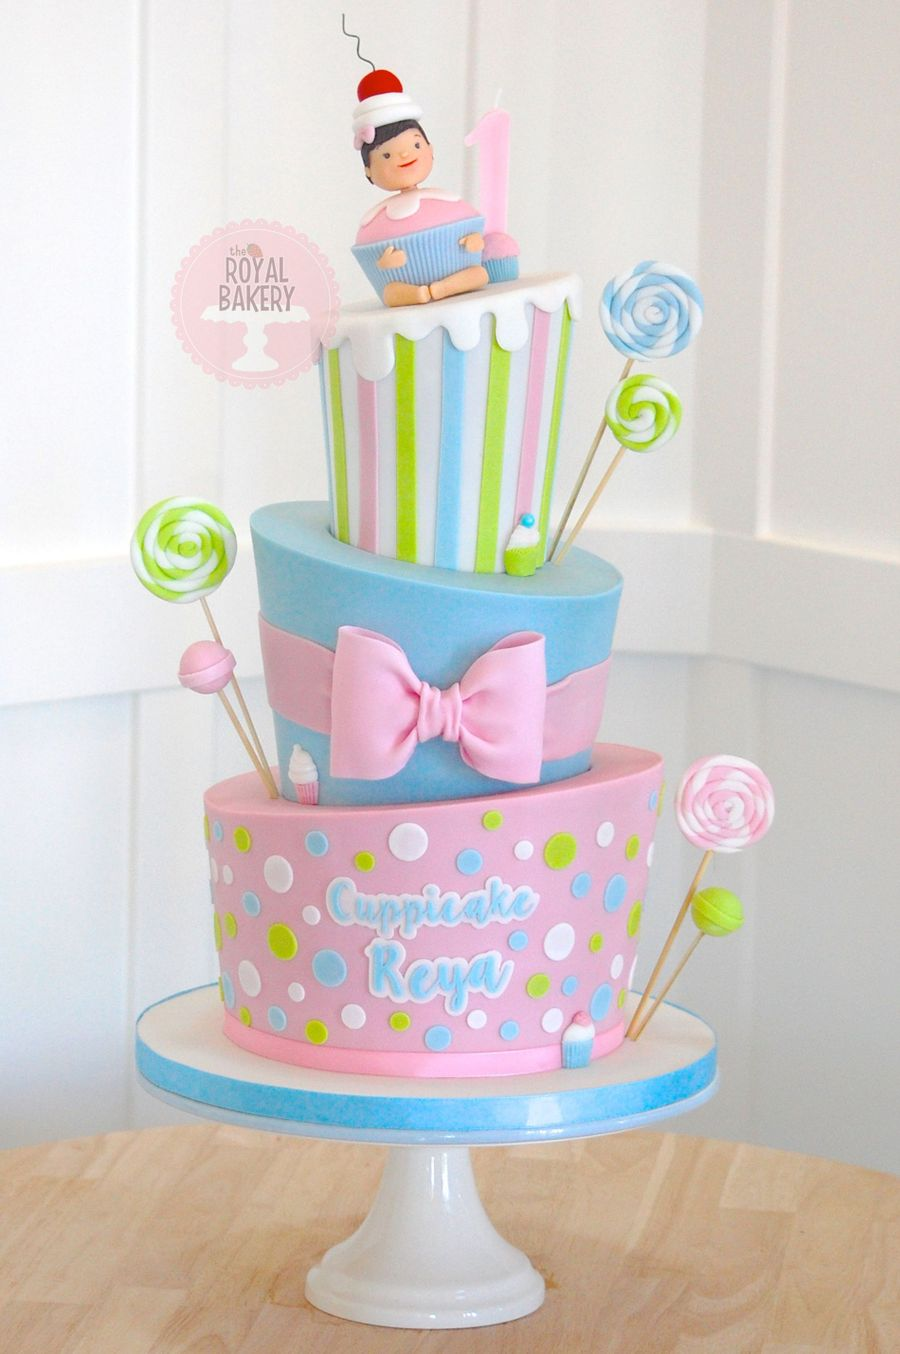 Cupcake Topsy Turvy Cake on Cake Central